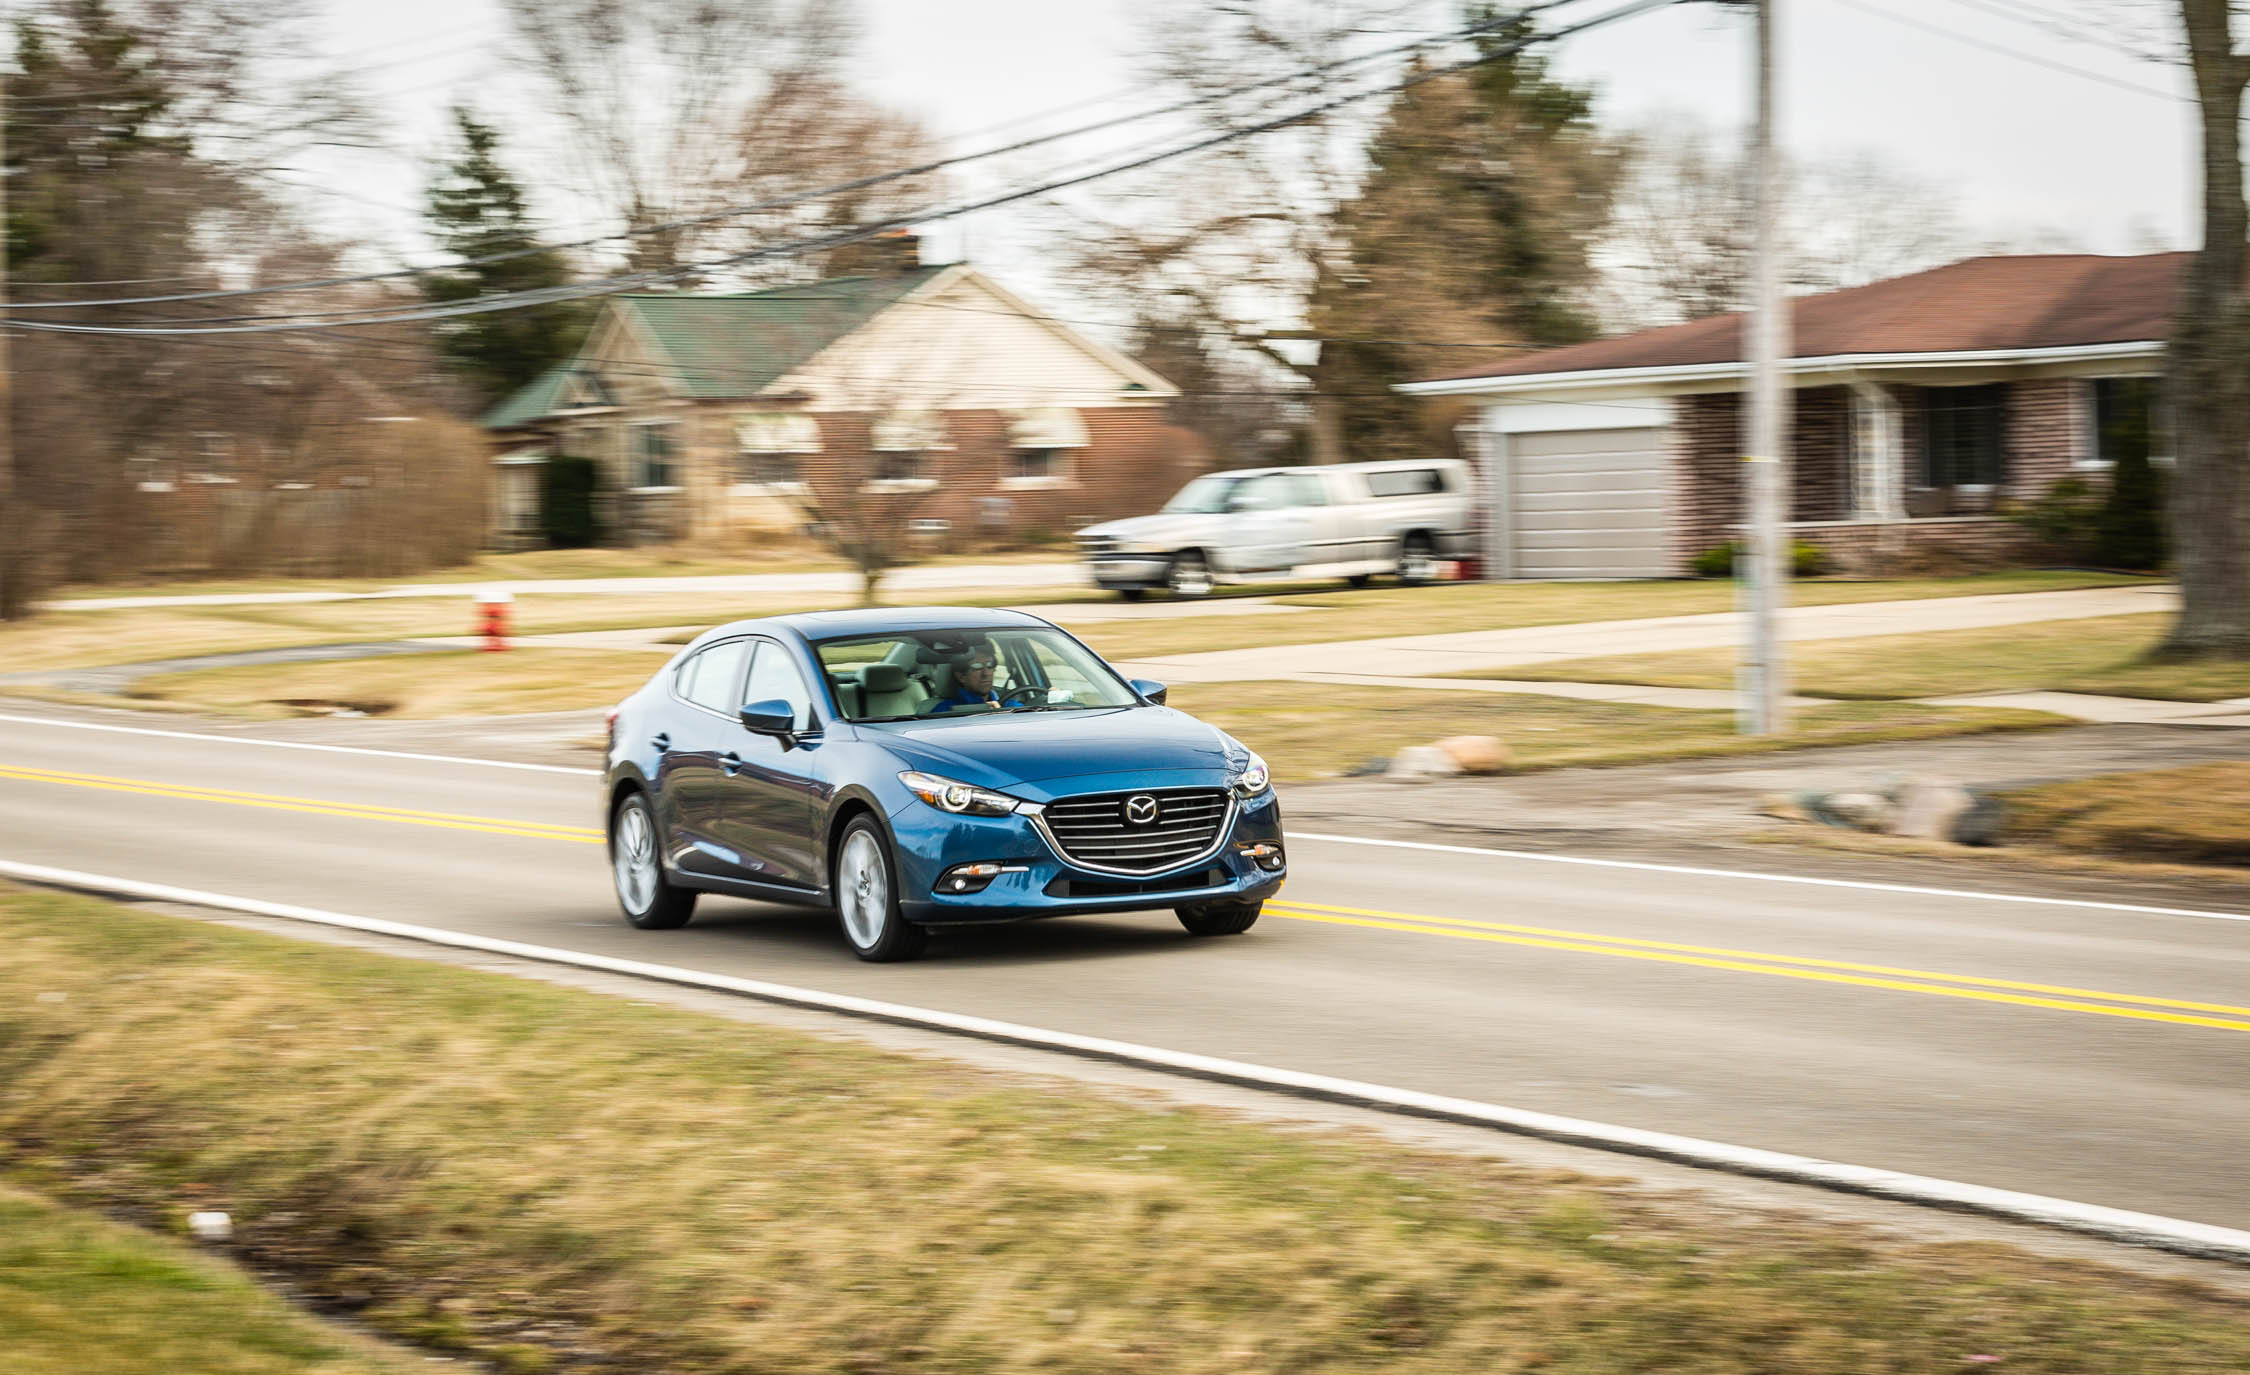 2017 Mazda 3 Grand Touring Sedan Test Drive (Photo 3 of 51)